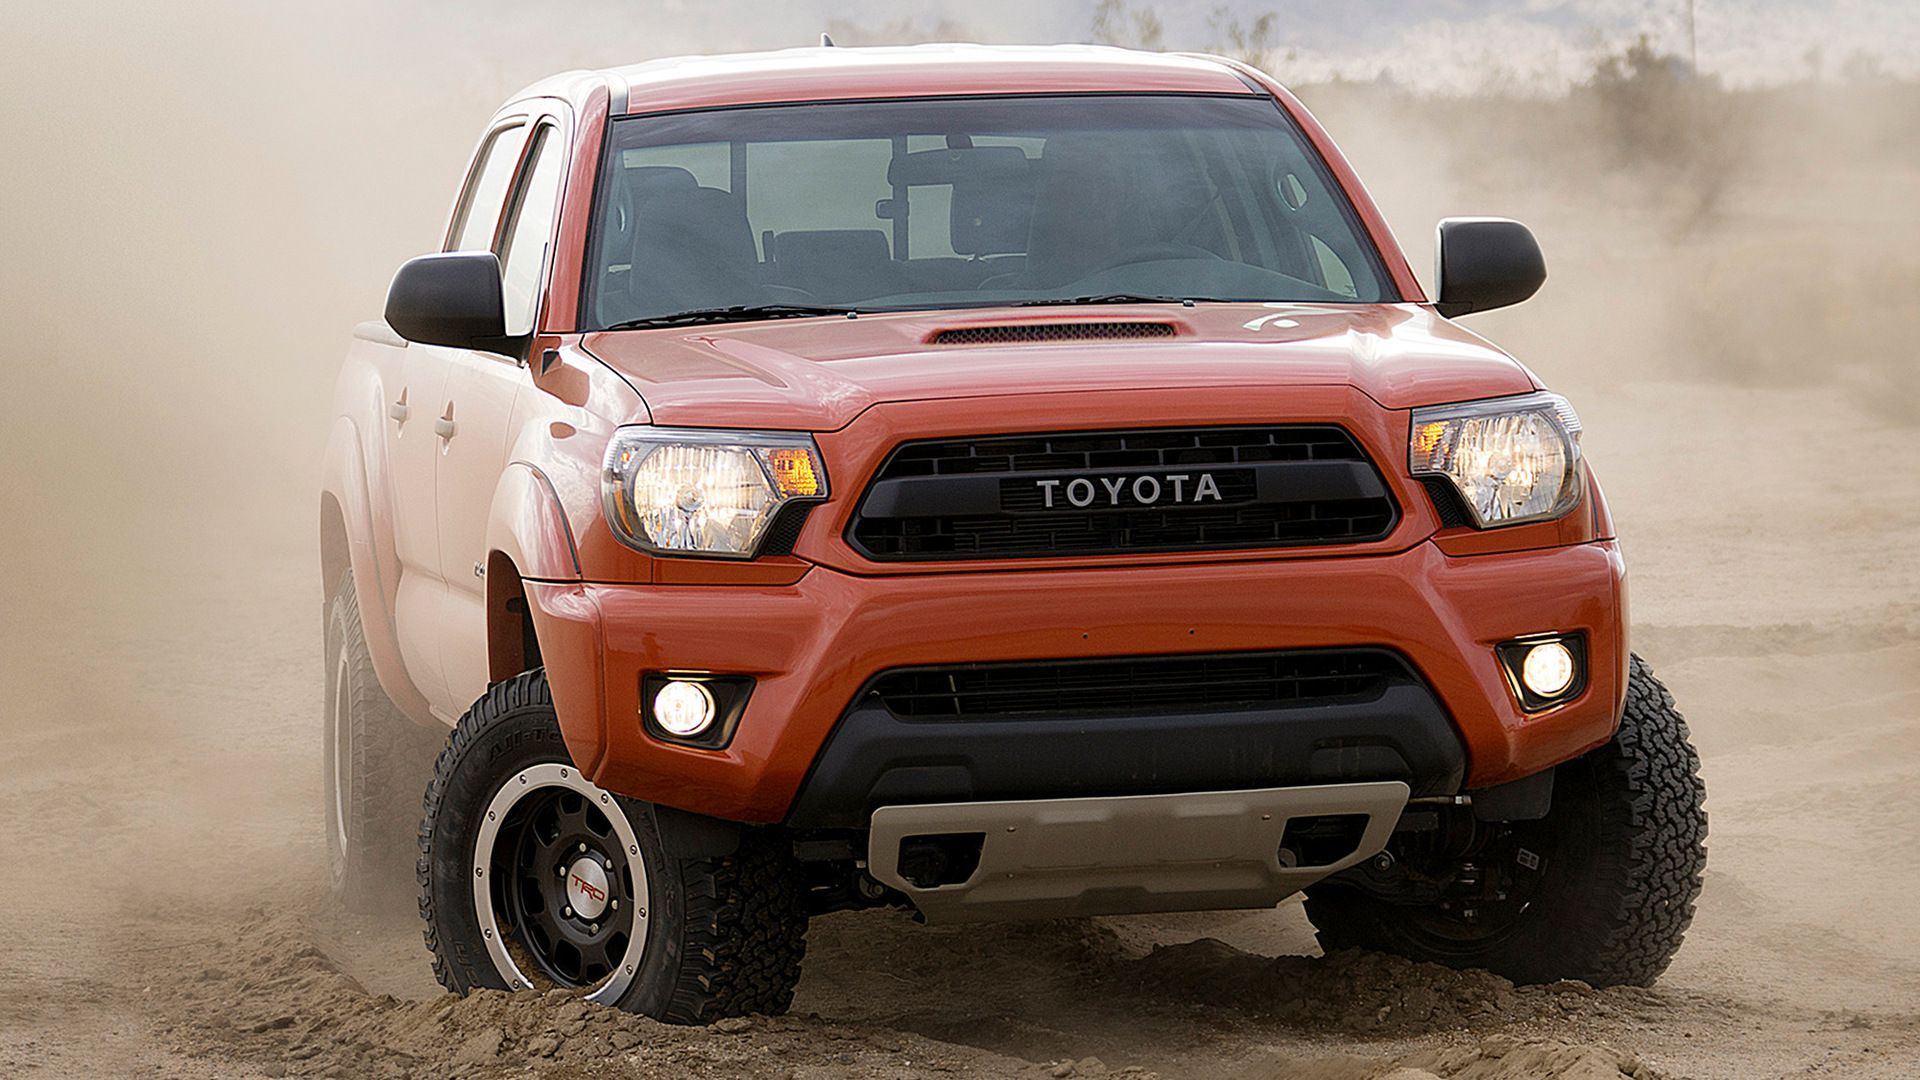 Toyota tacoma trd pro double cab 2015 wallpapers and hd images